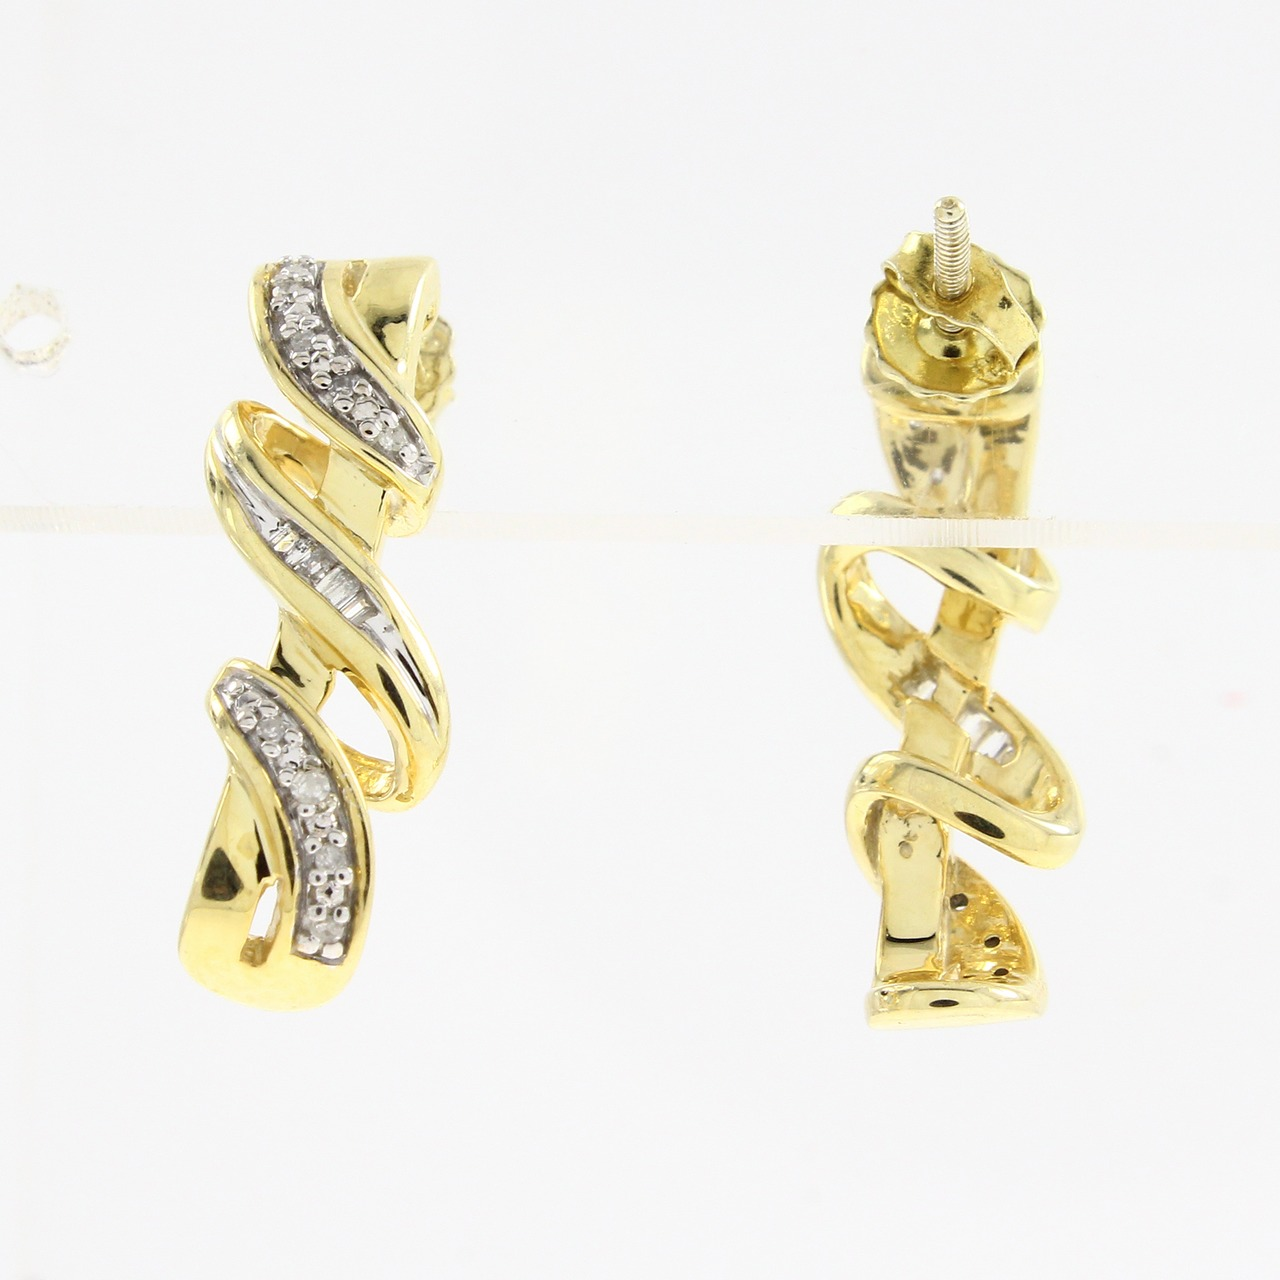 0.10 CT Natural Diamond Stud Earrings In 14K Yellow Gold Plated Silver pair of zircon gold plated stud earrings